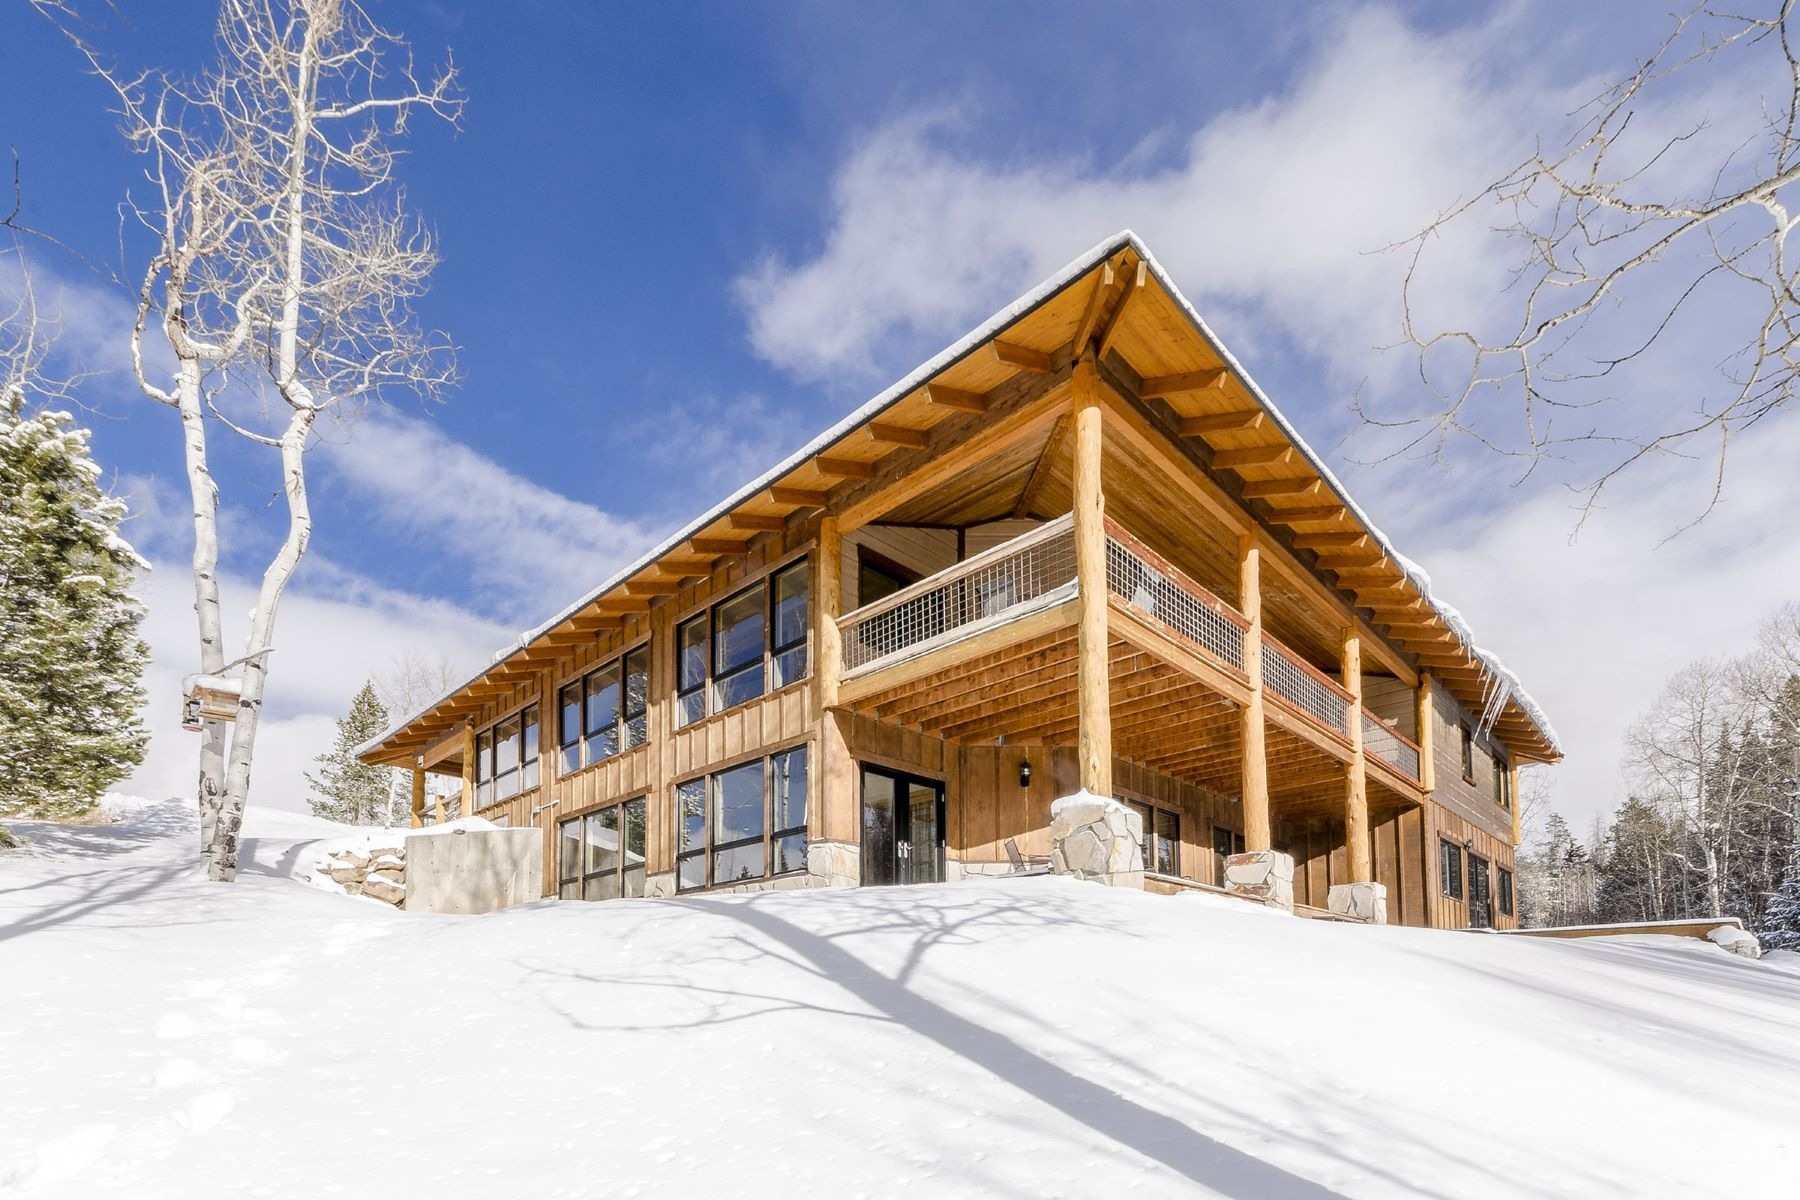 Single Family Home for Sale at Stagecoach Seclusion 32935 & 32950 Maverick Way Oak Creek, Colorado 80467 United States